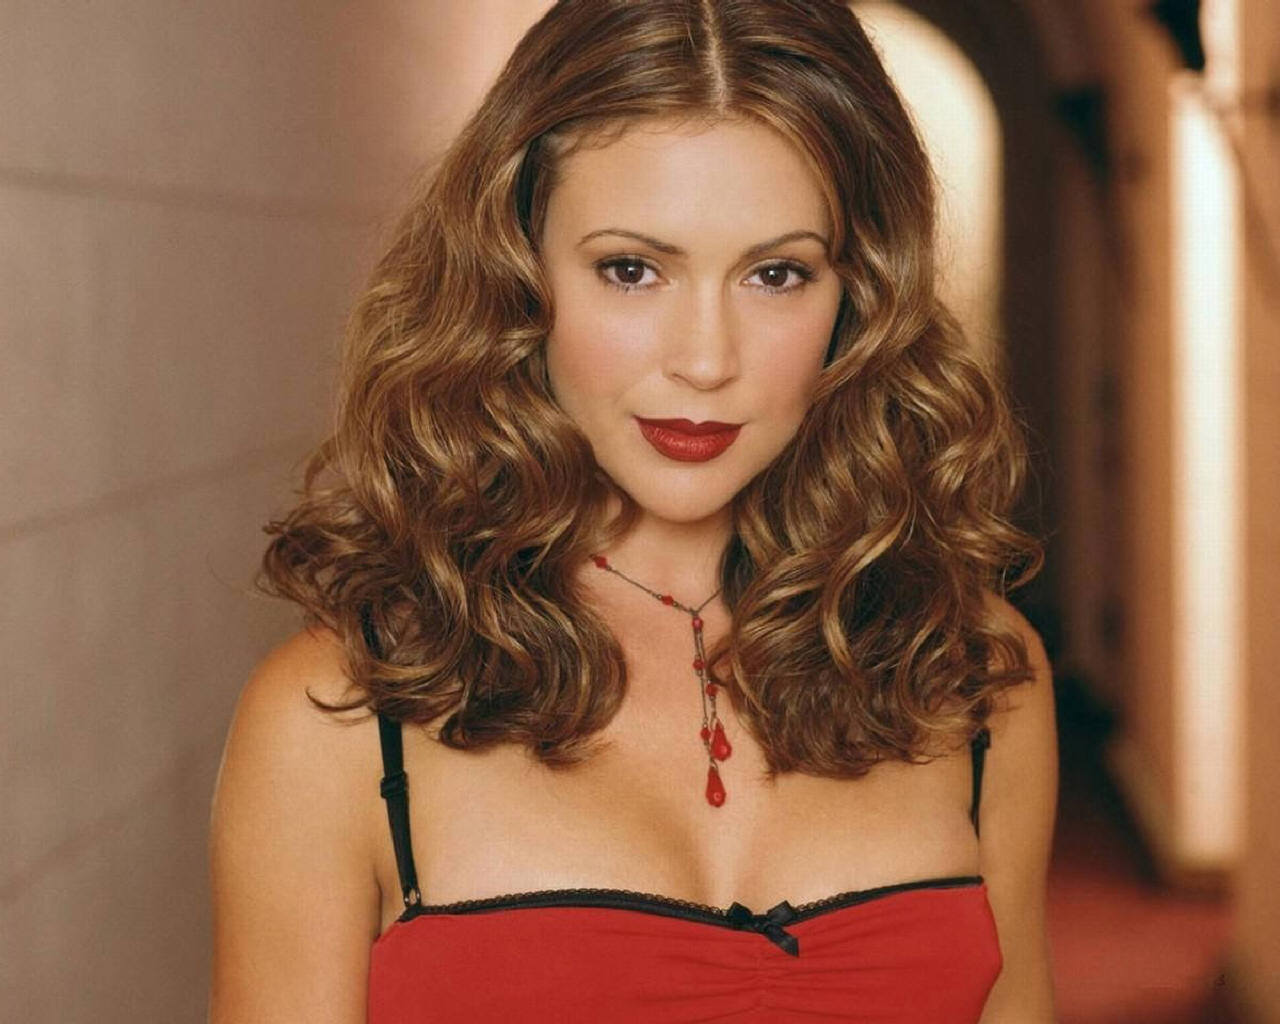 Alyssa Milano 2008 hairstyles, haircuts, and hair colors for 2012: hairstyles